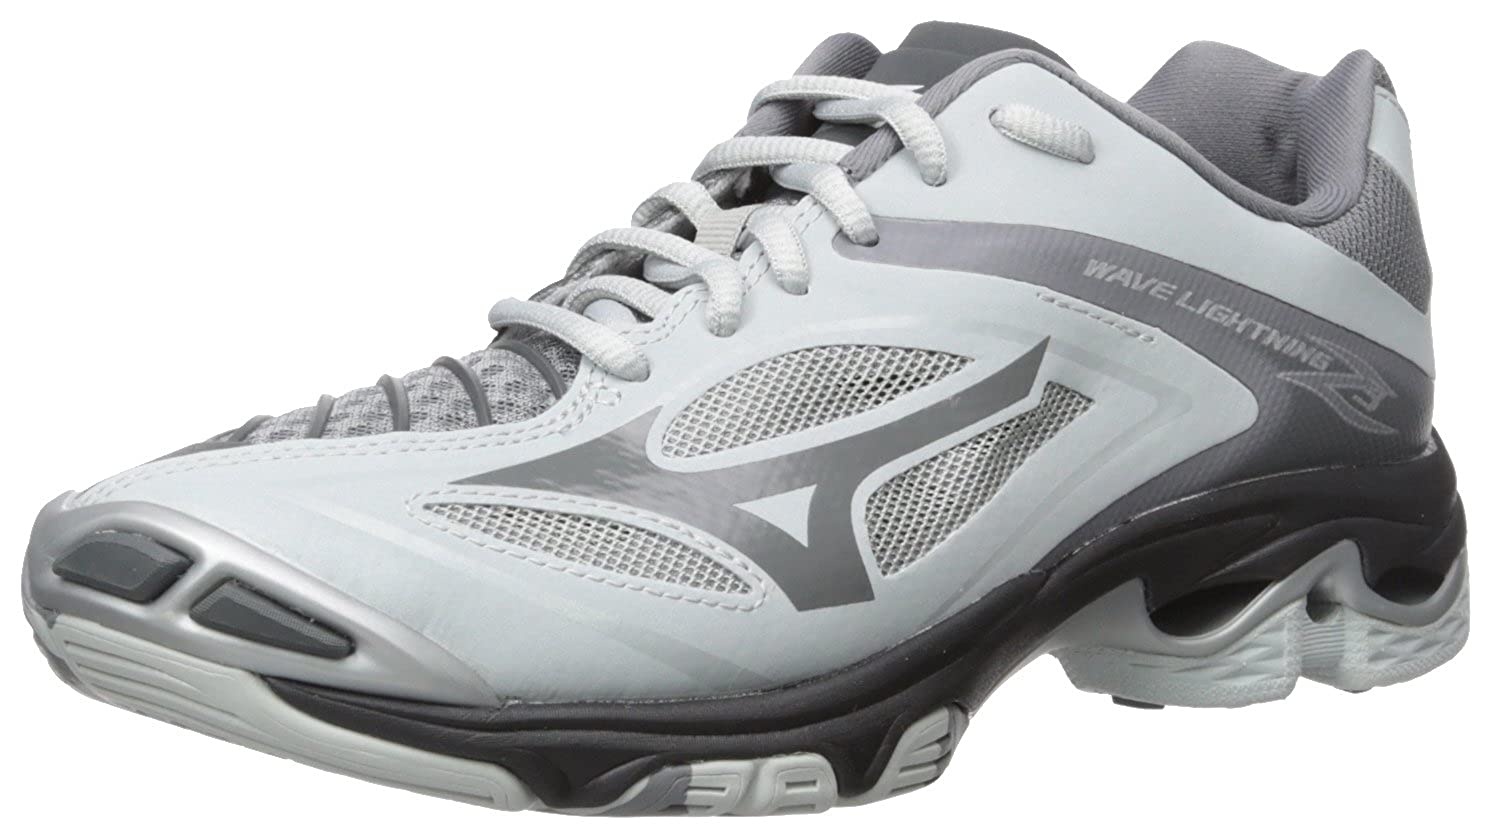 mizuno volleyball shoes price in india for womens